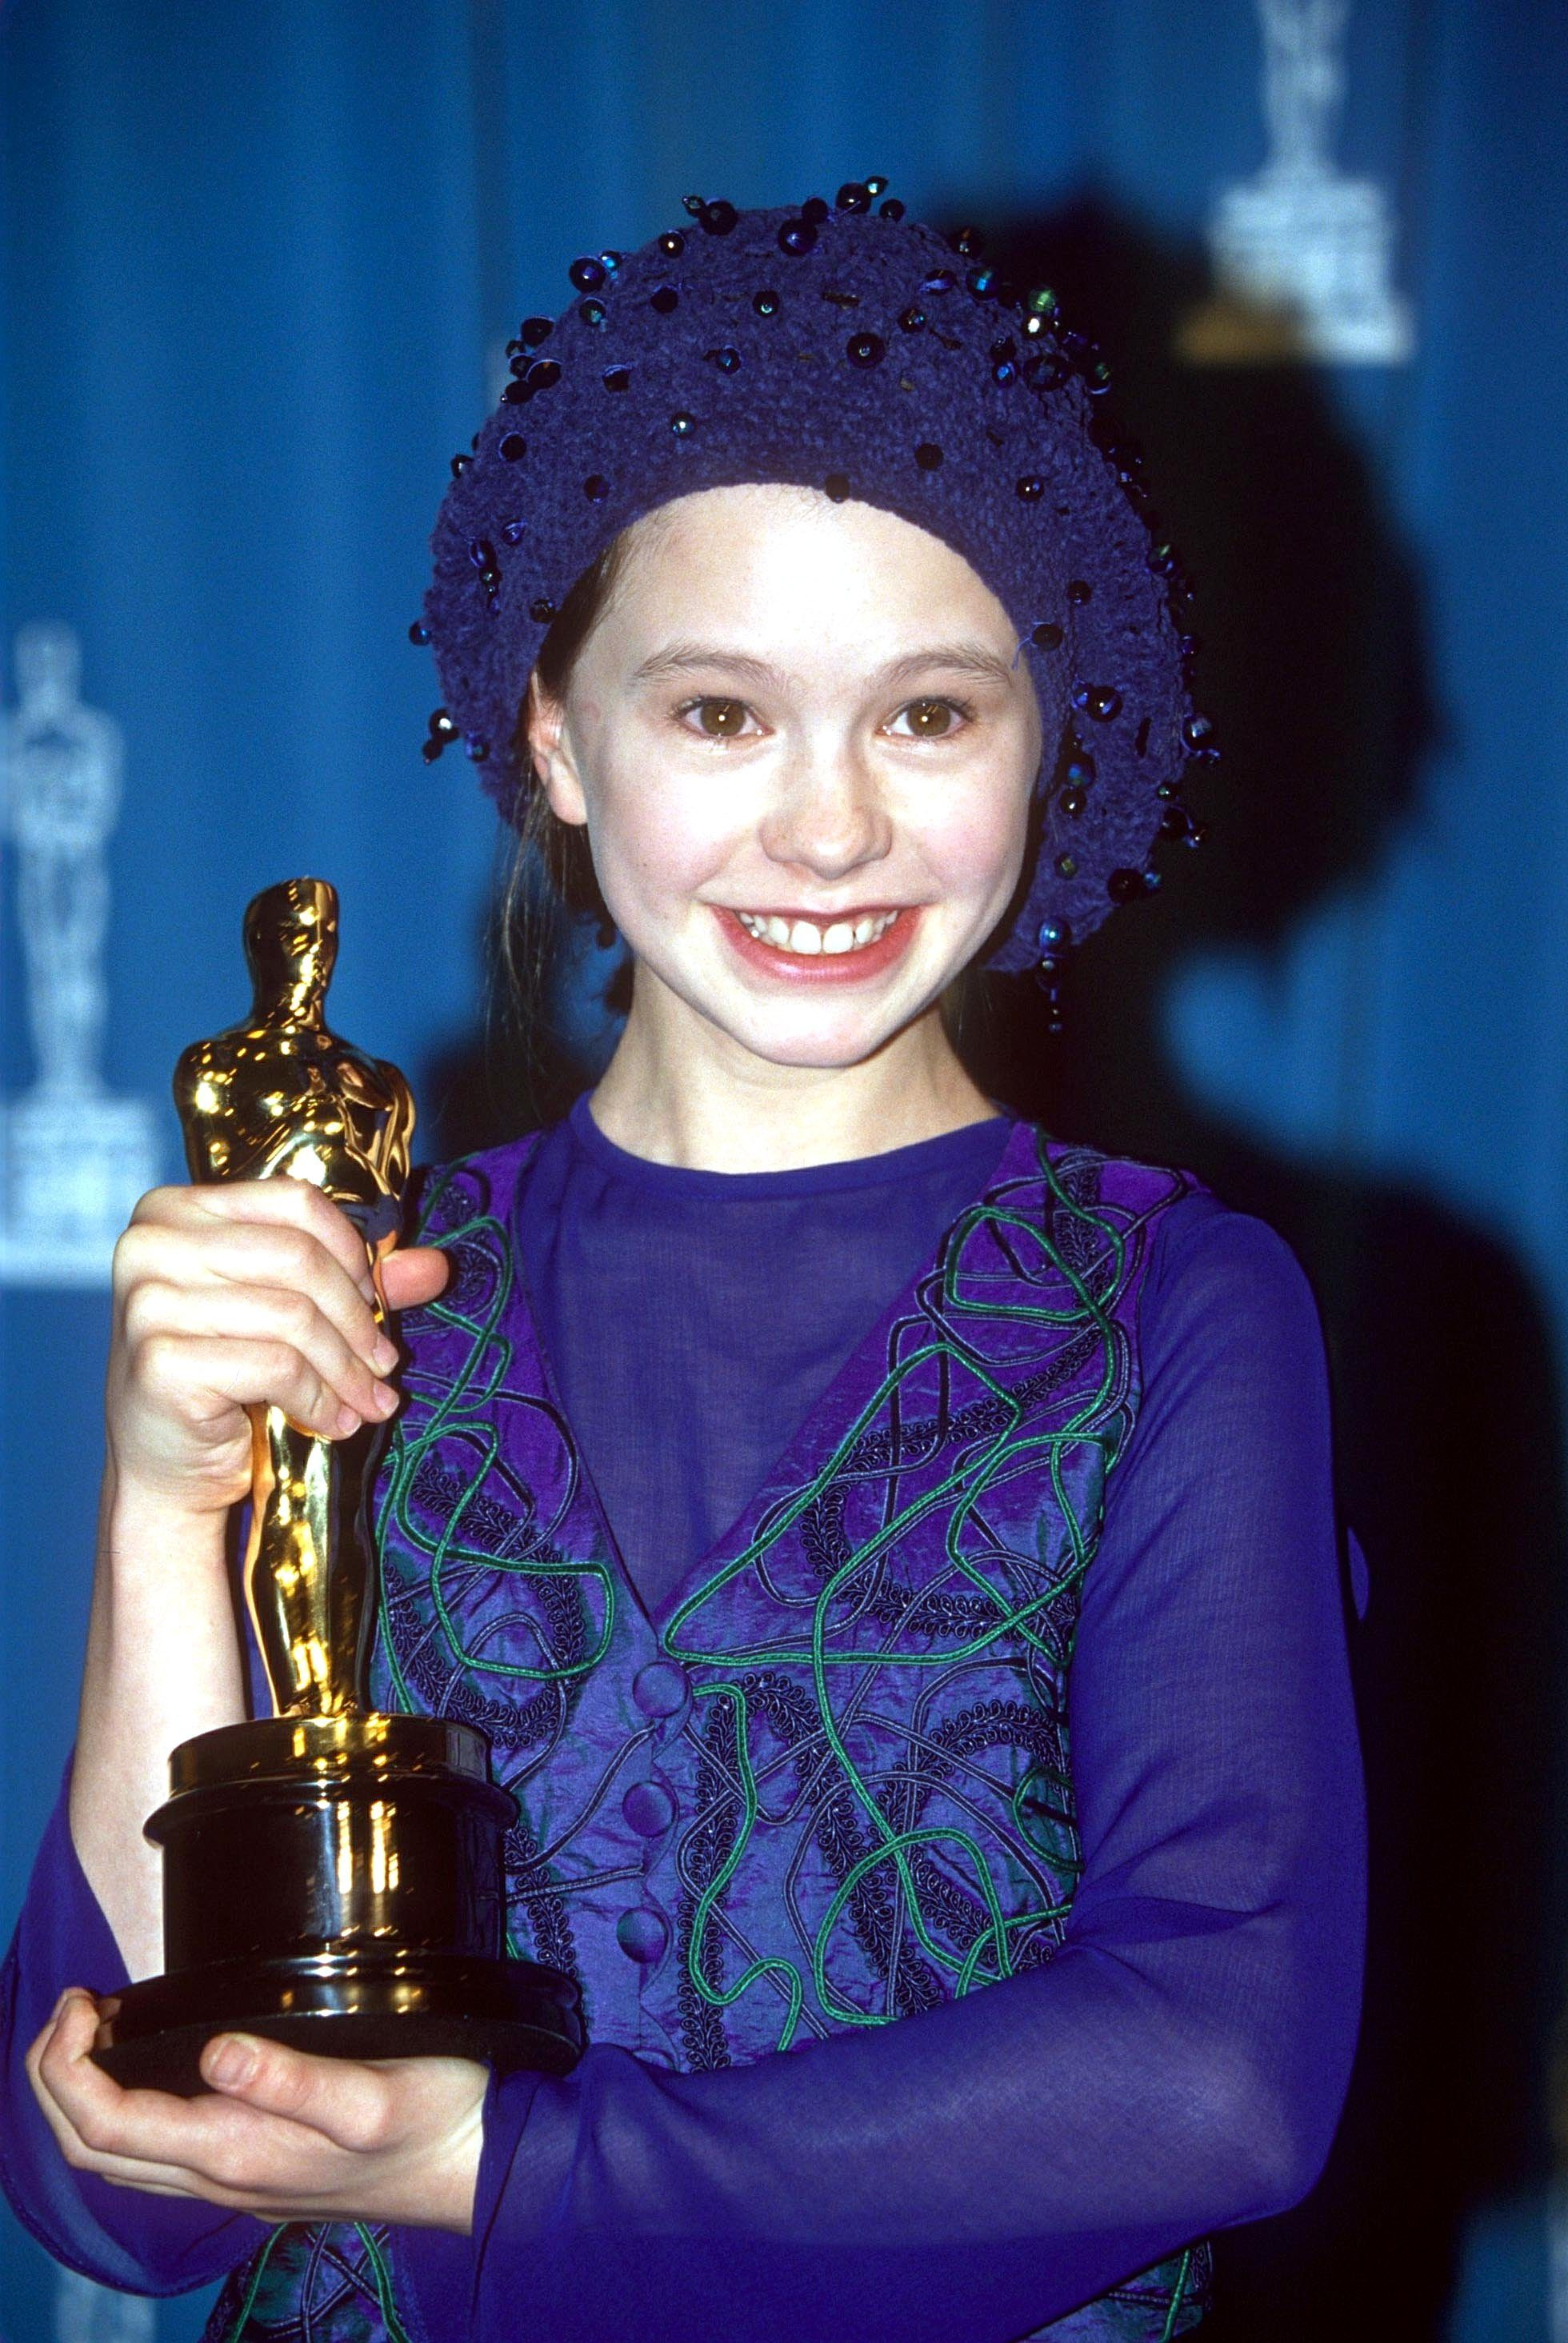 Mandatory Credit: Photo by Shutterstock (227245ad) ANNA PAQUIN ACADEMY AWARDS, LOS ANGELES, AMERICA - 1994